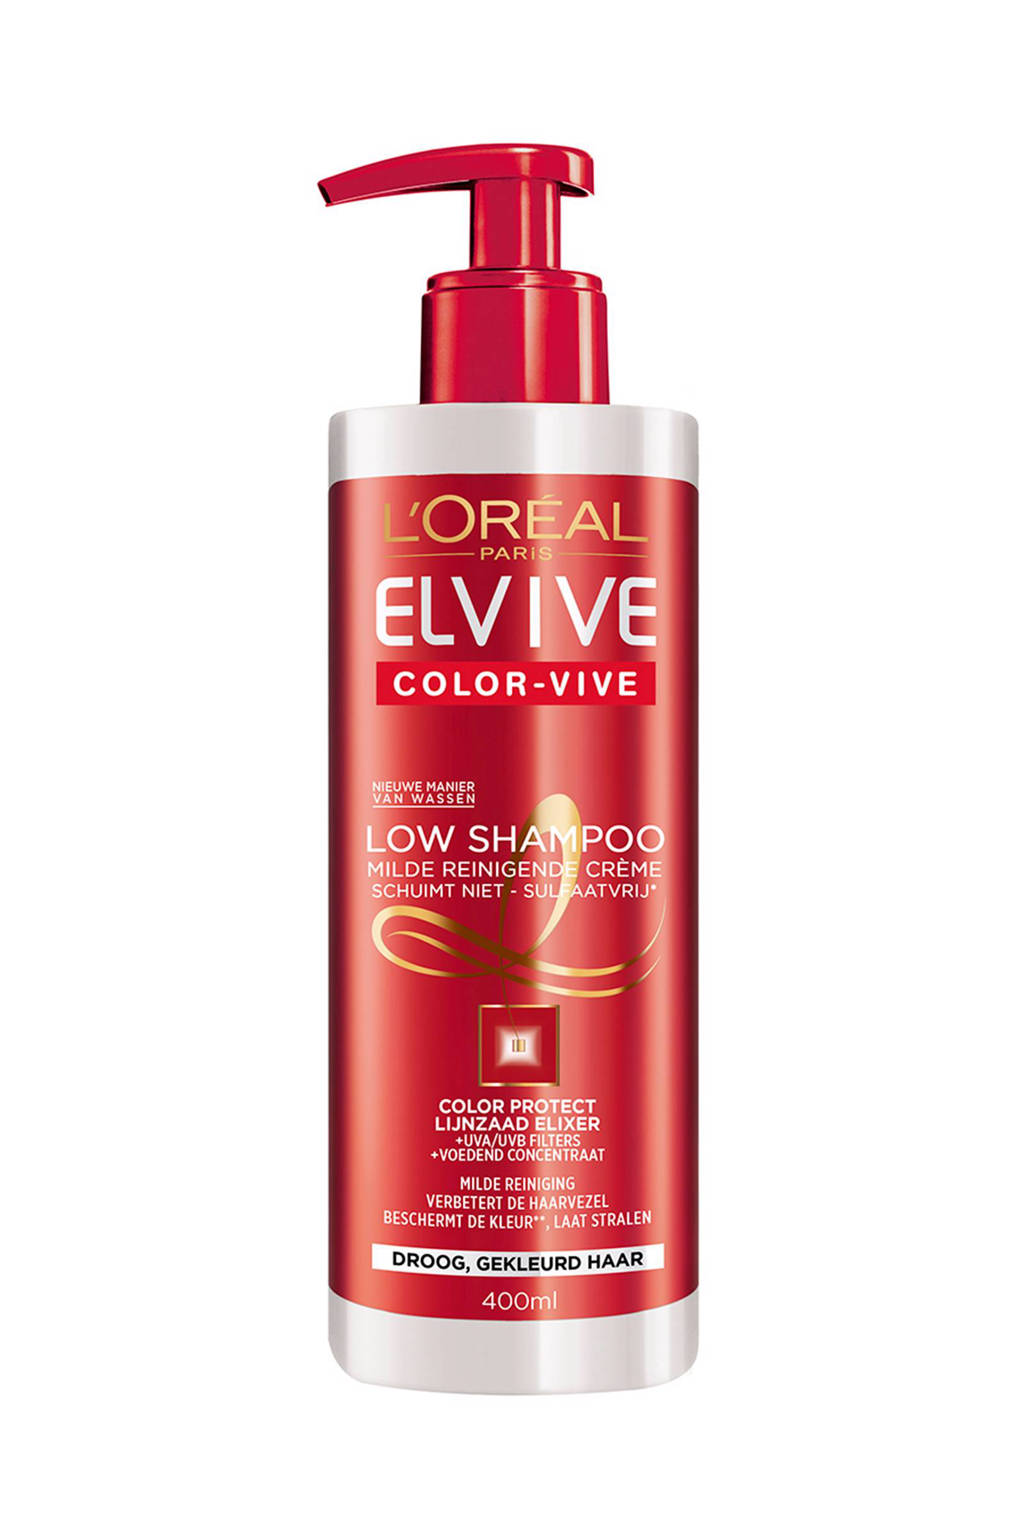 L'Oréal Paris Elvive Color Vive Low shampoo - 400 ml